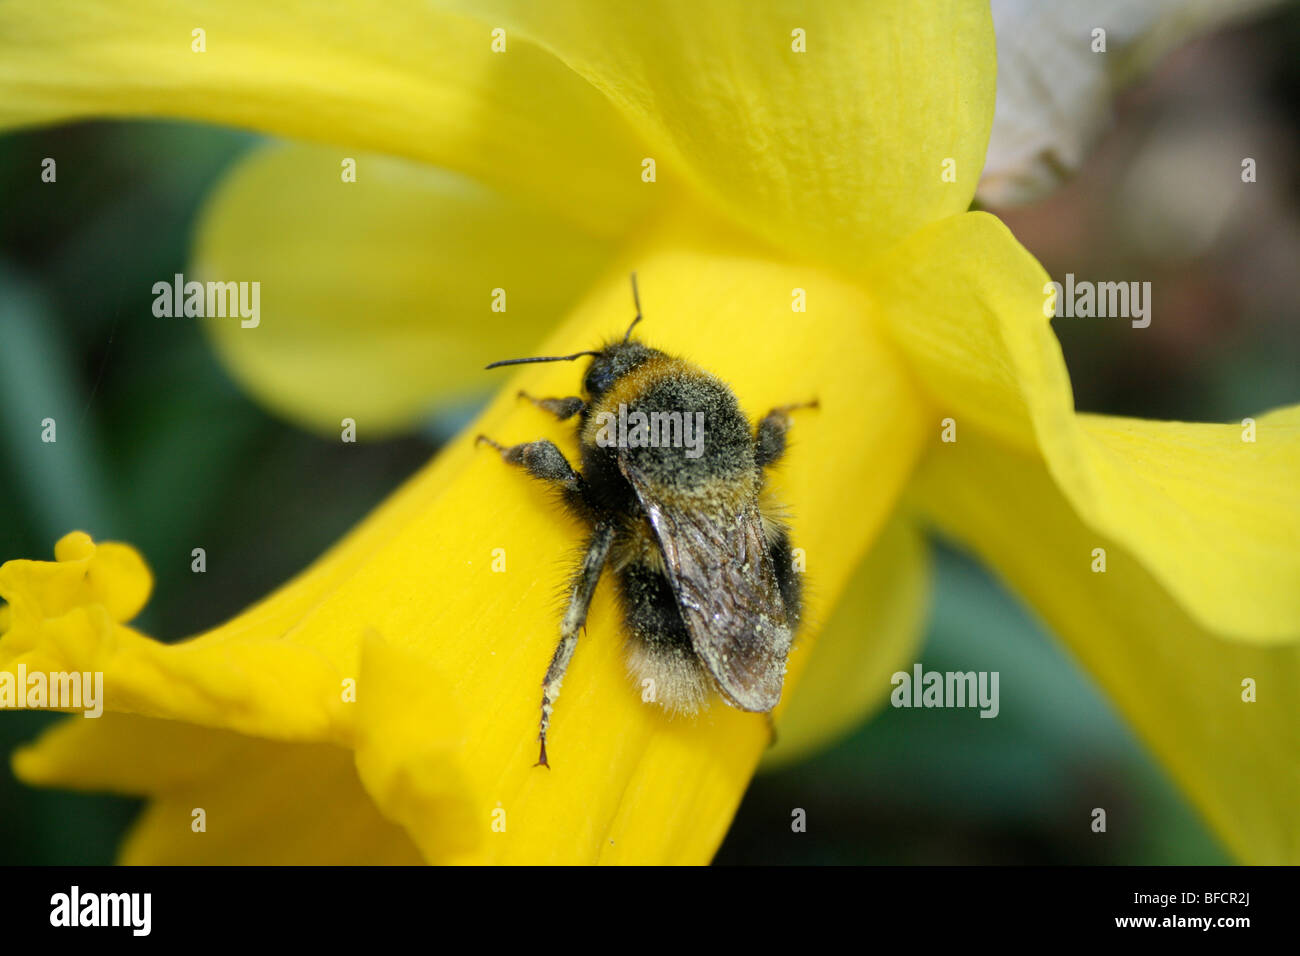 Daffodil and pollen-dusted bee - Stock Image